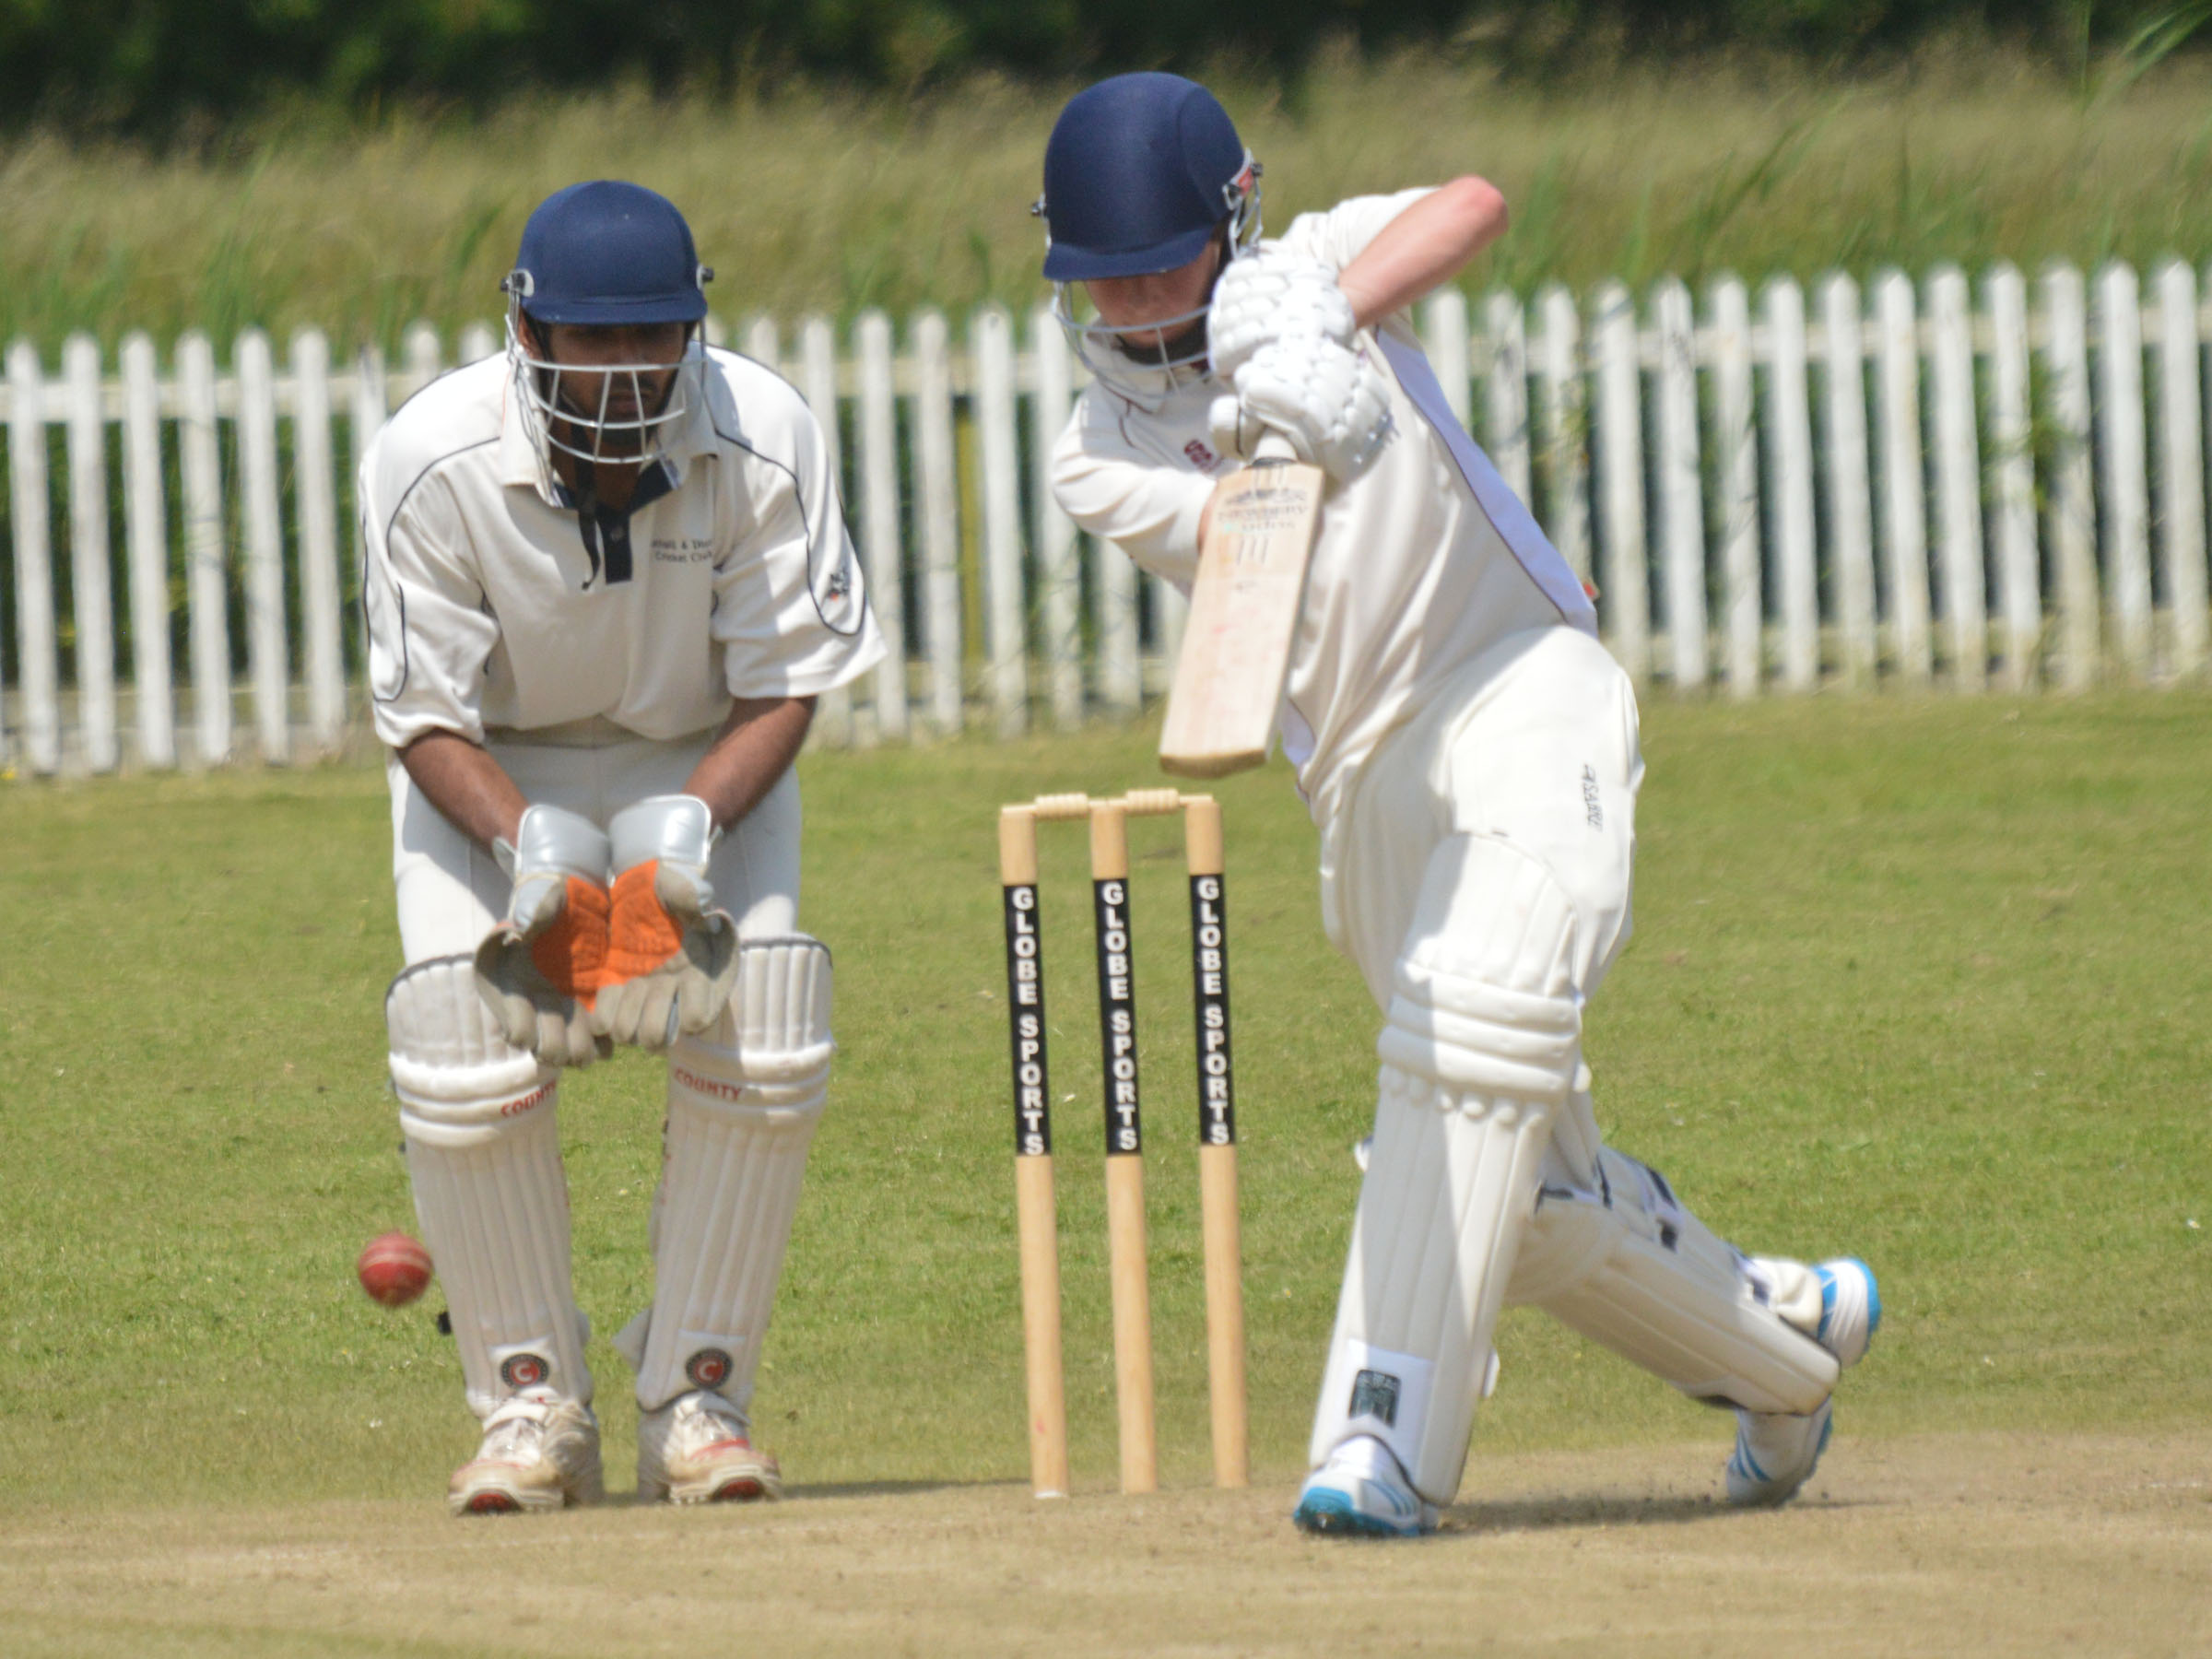 Somerset Cricket League round-up - Collapse costs Wedmore